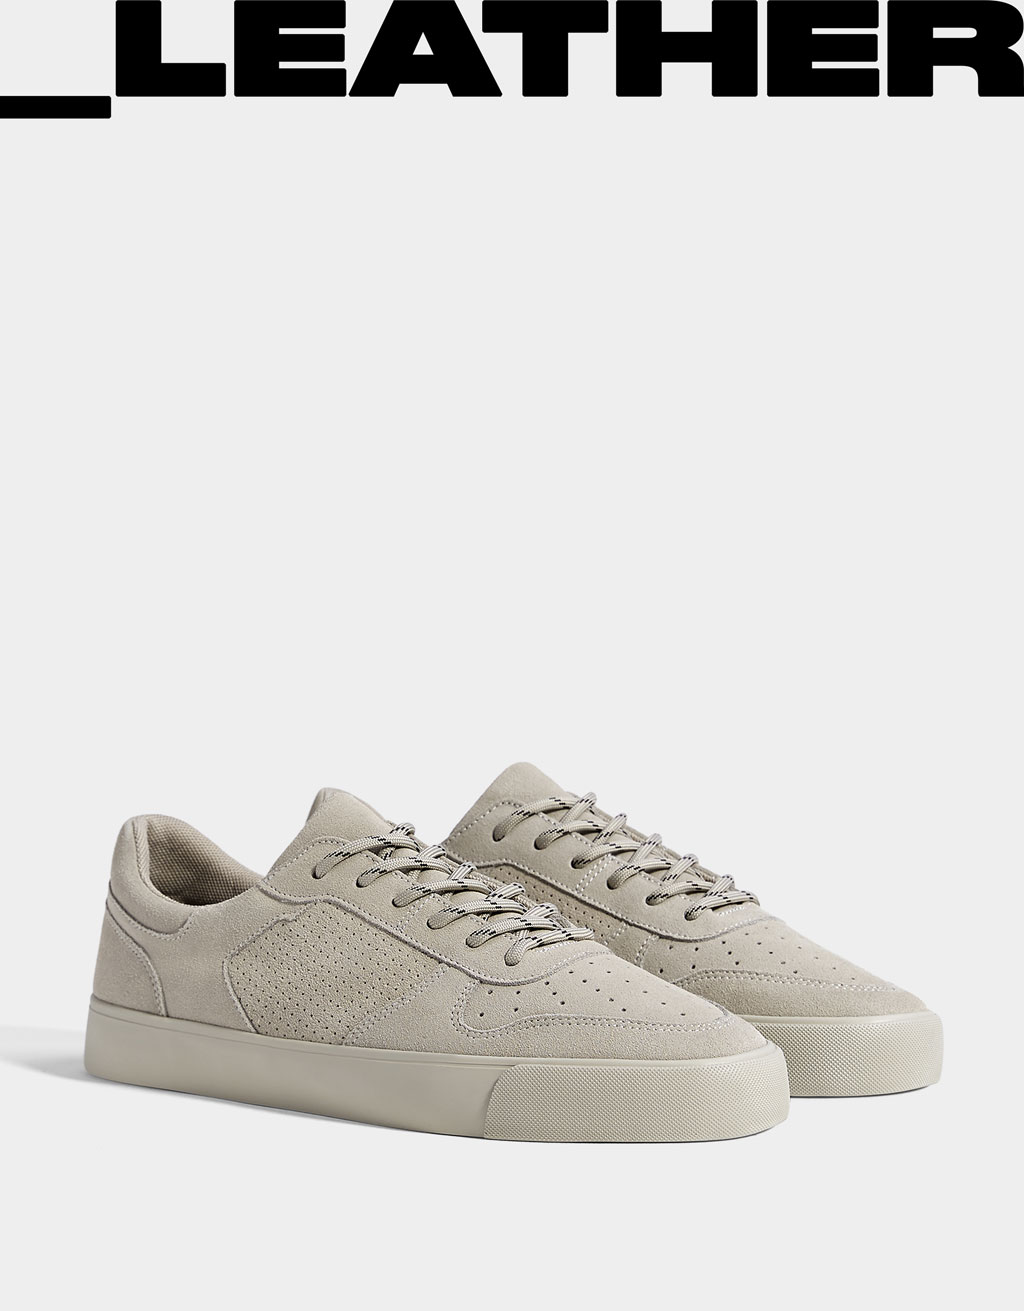 Men's leather trainers with broguing